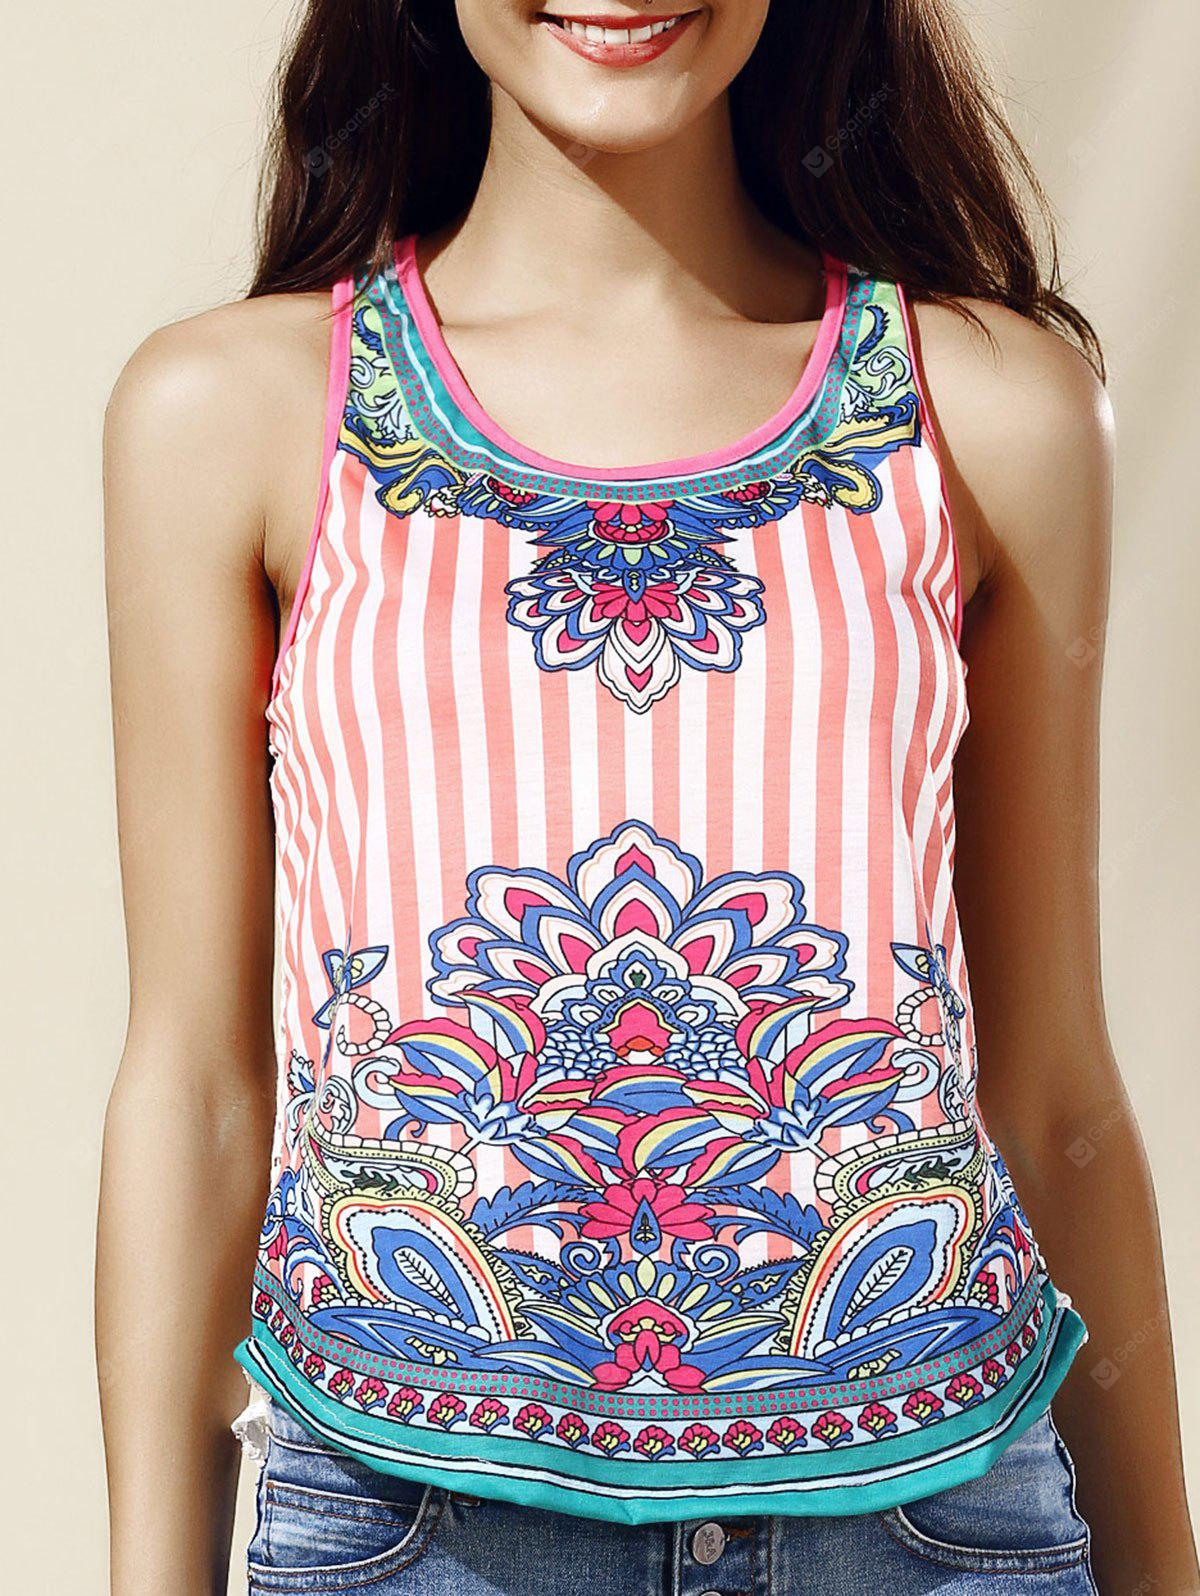 Chic Women's Scoop Neck Lace Ethnic Print Tank Top